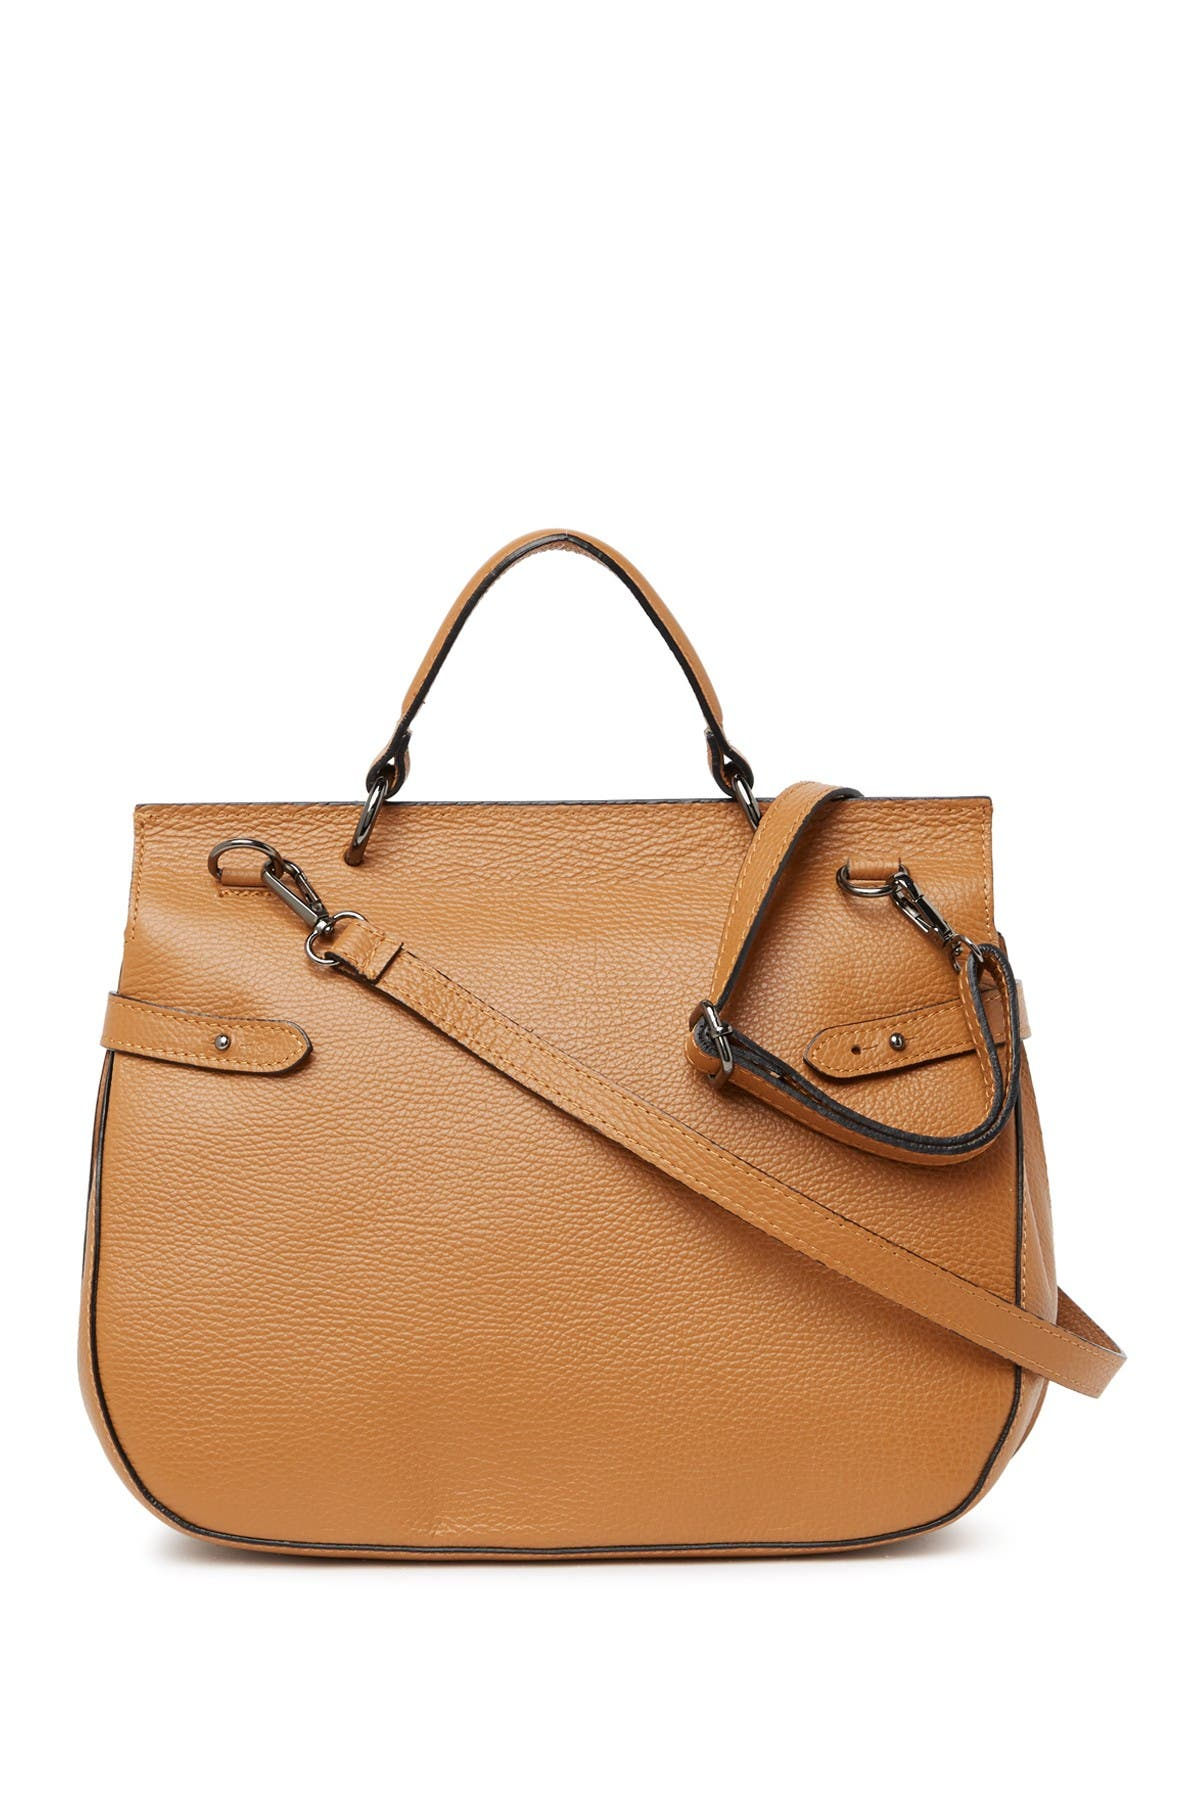 Image of Renata Corsi Leather Satchel Bag